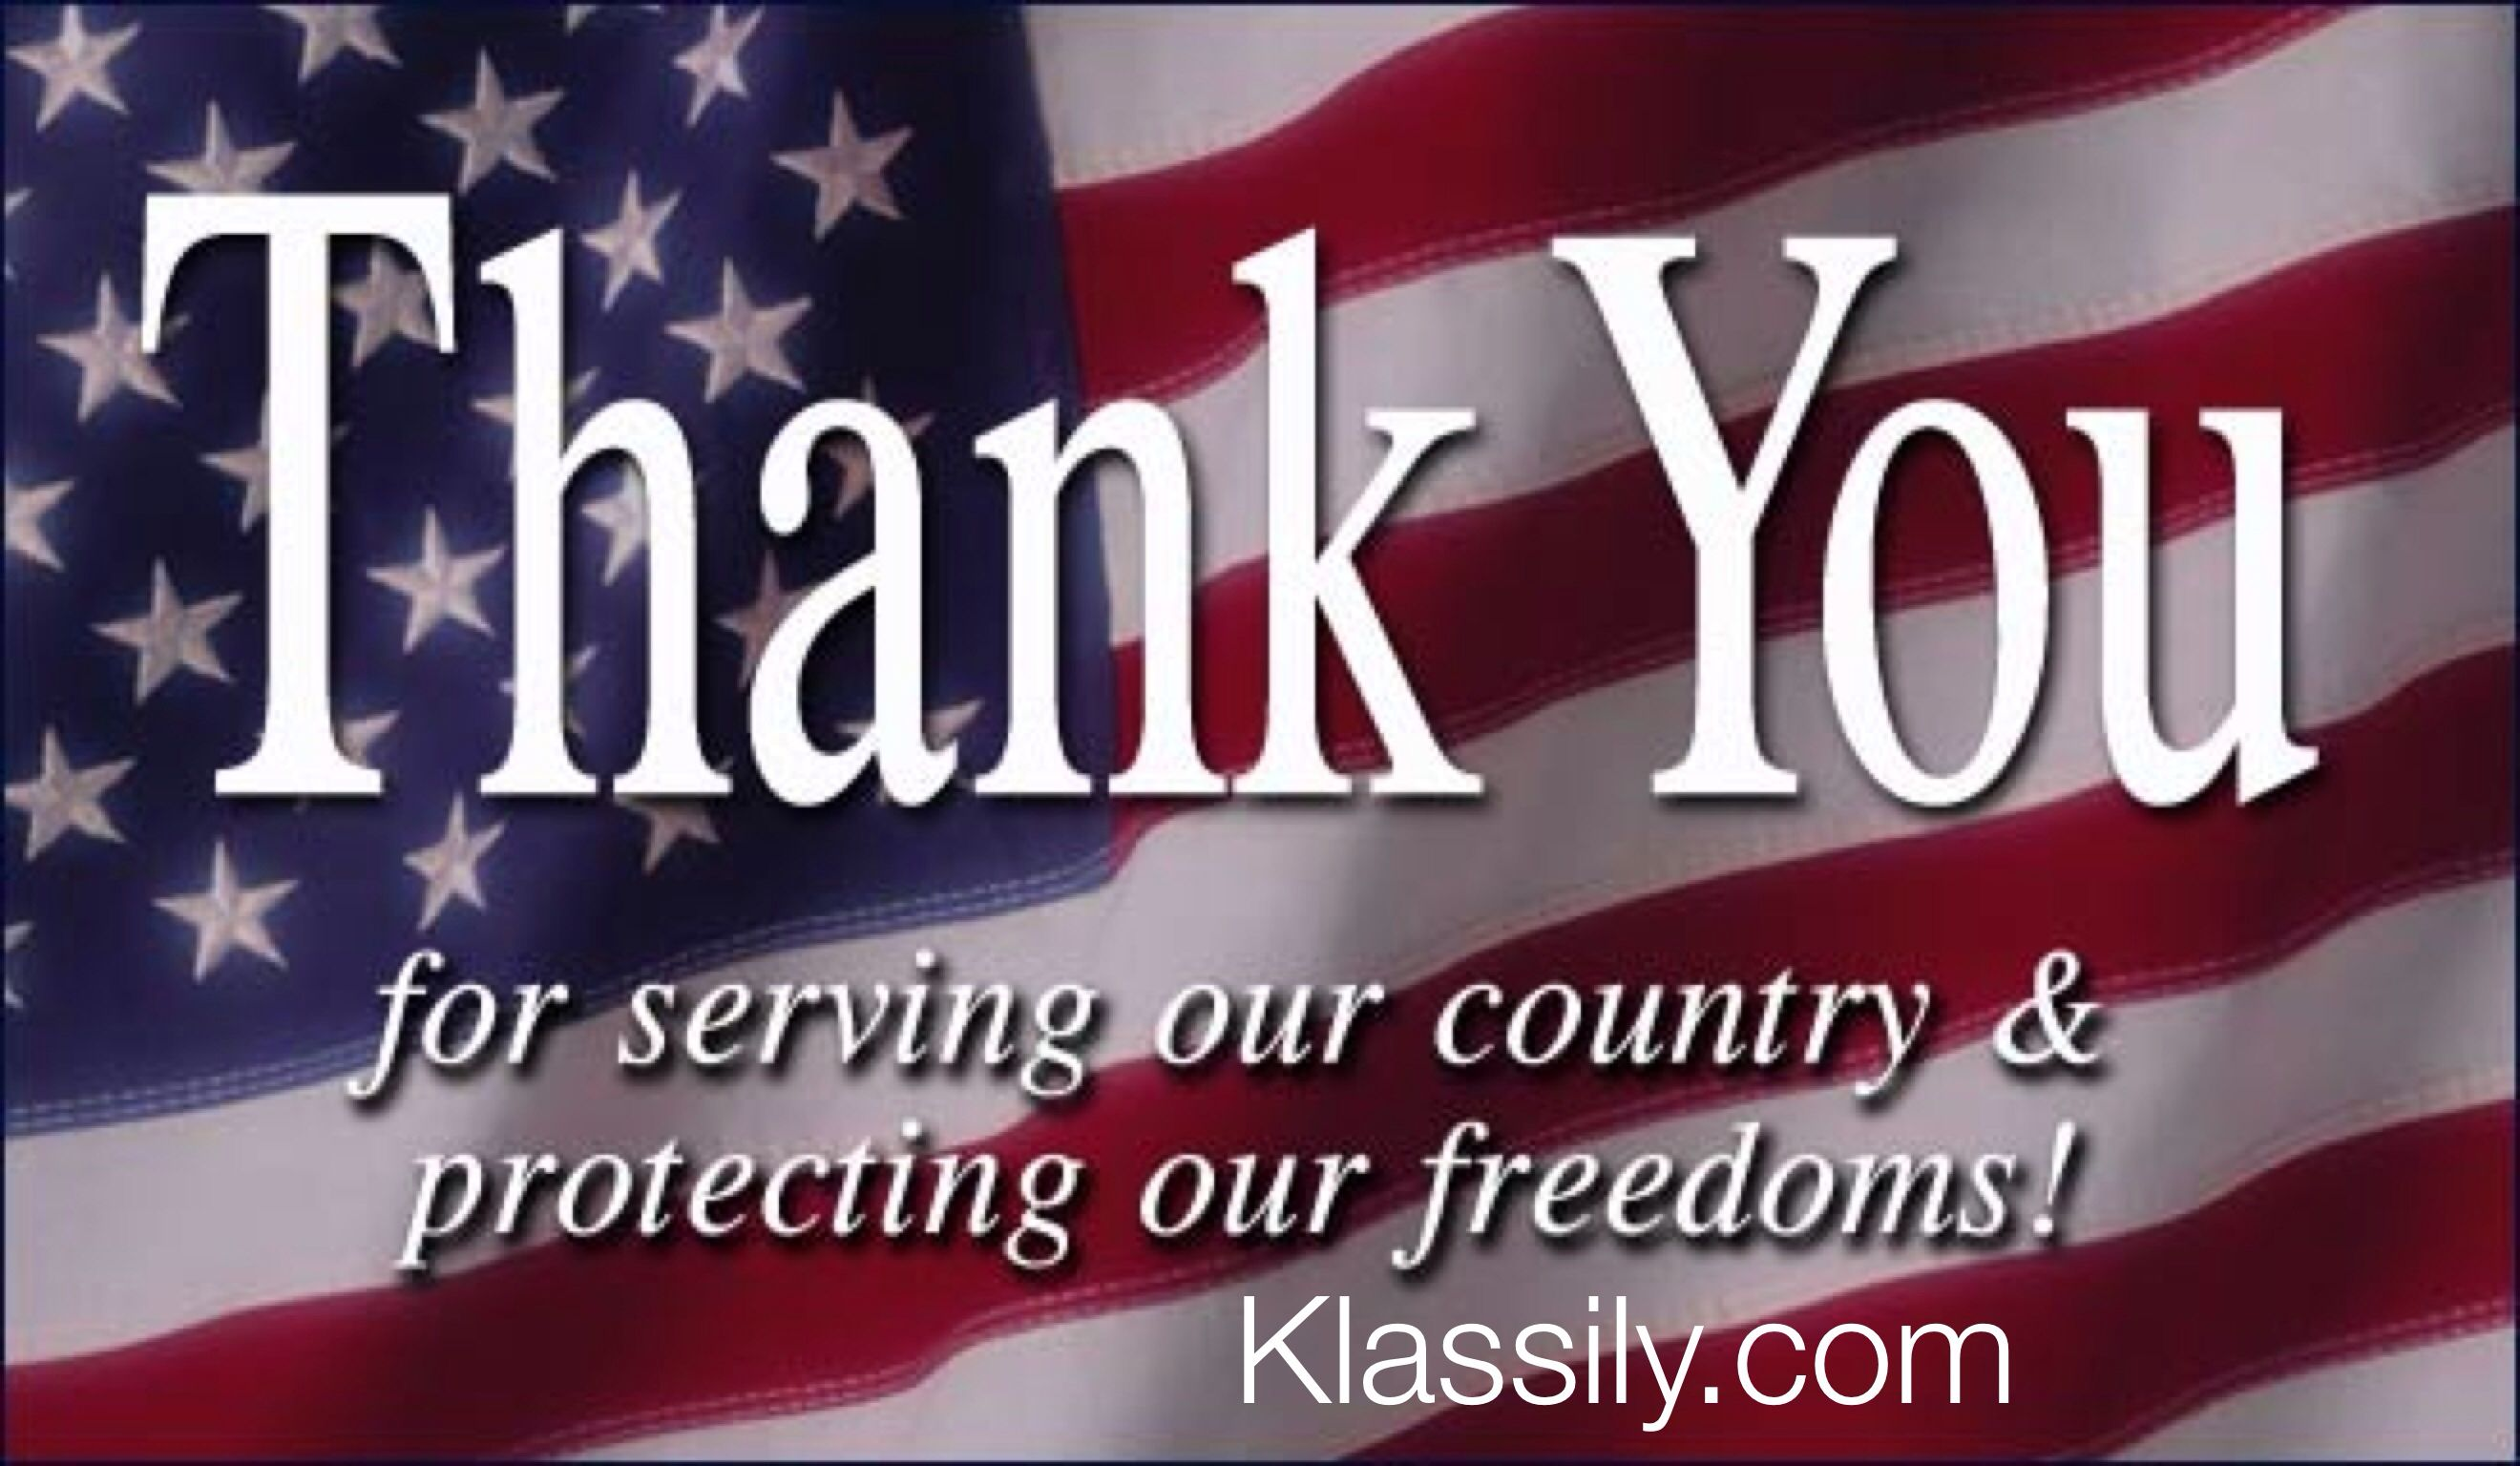 Memorial day poems veterans poems prayers - Poem A Special Thnx To All The Forgotten Soldiers And Veterans